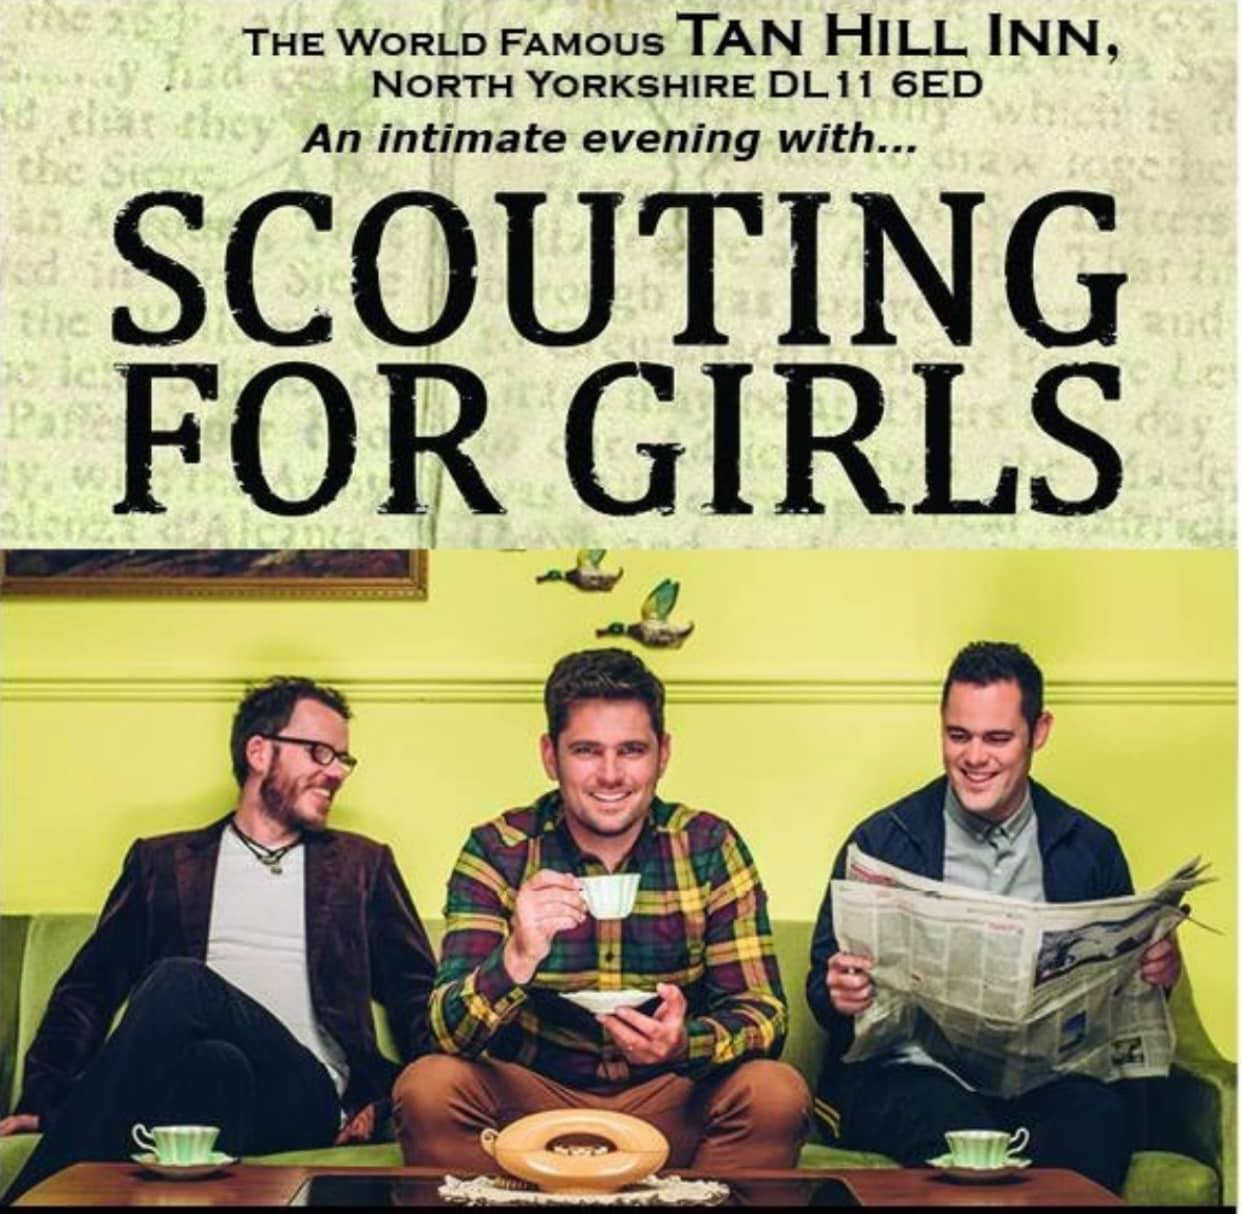 Scouting for Girls at Tan Hill Inn